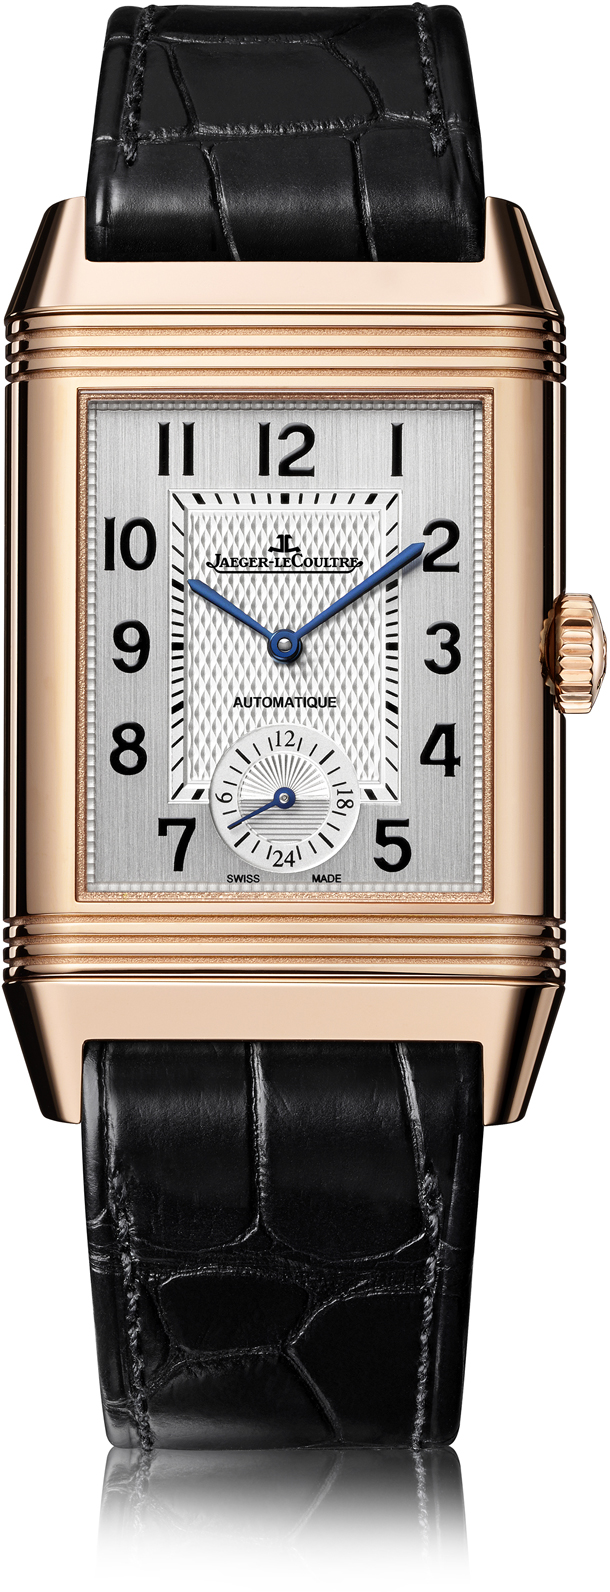 Jaeger-LeCoultre-Reverso-Classic-Duo_front